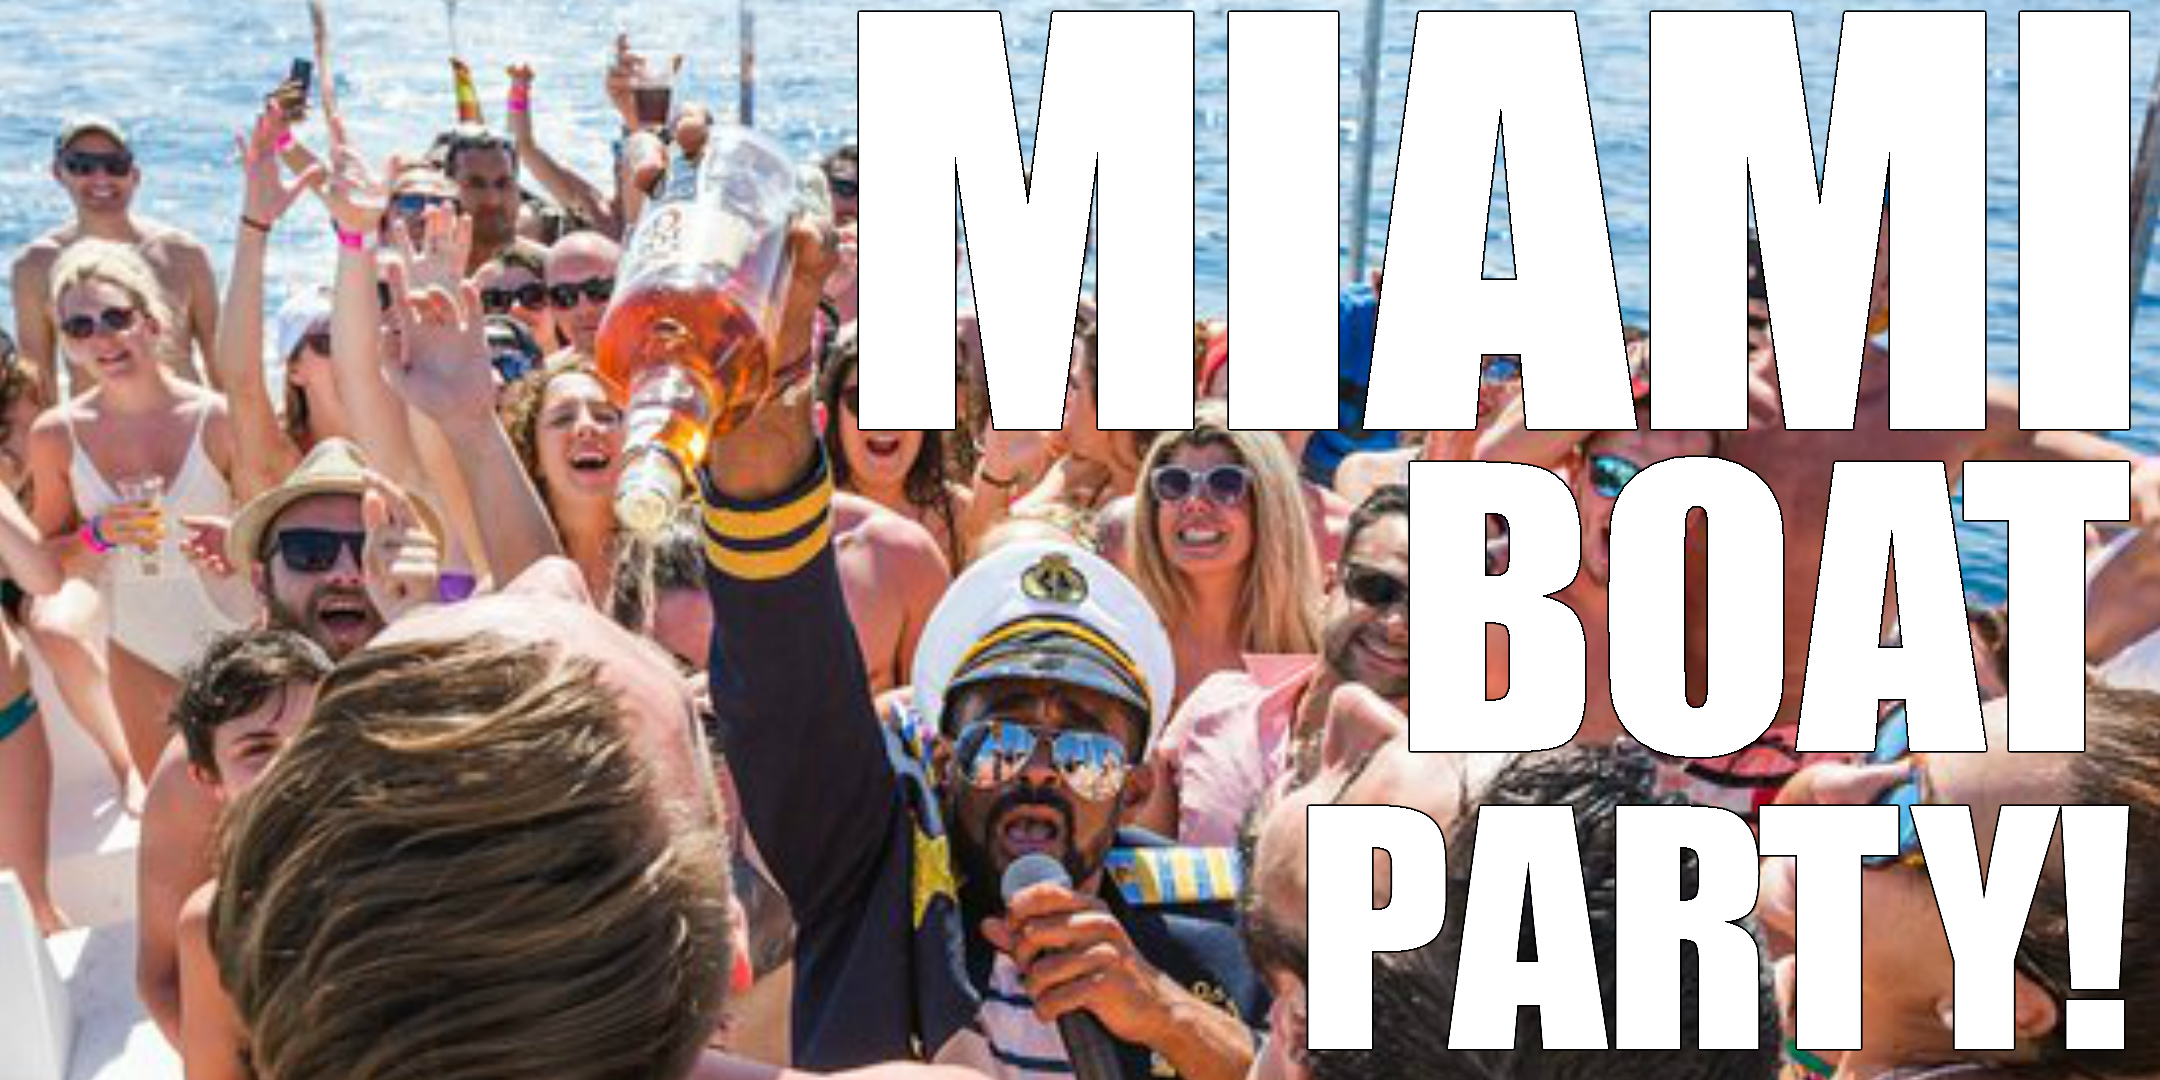 PARTY BOAT MIAMI - BOOZE CRUISE  MIAMI - PARTY BOAT MIAMI - BOOZE CRUISE